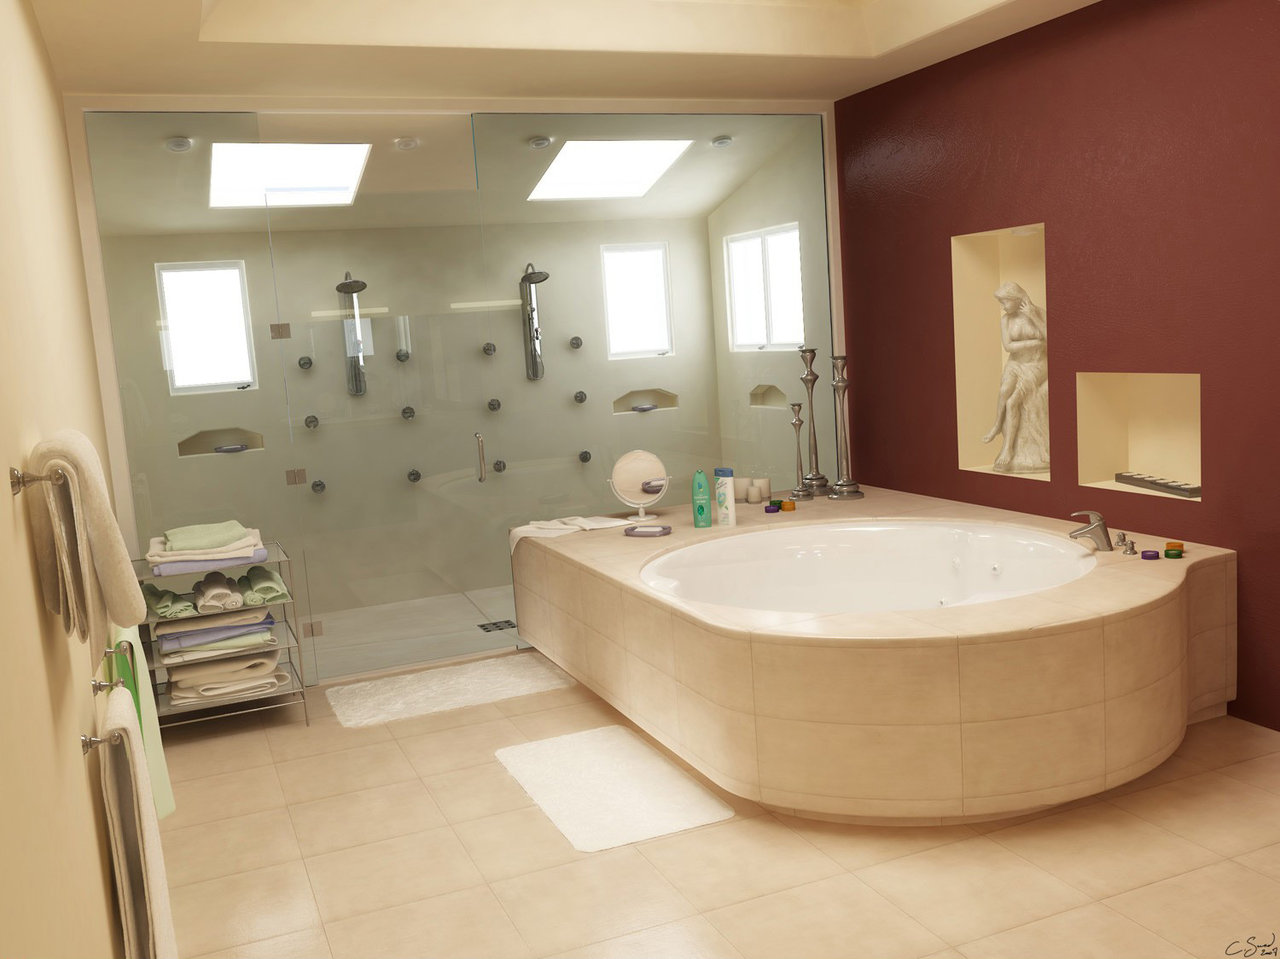 Bathroom remodeling with design. | Jmarvinhandyman on Nice Bathroom Designs For Small Spaces  id=98630